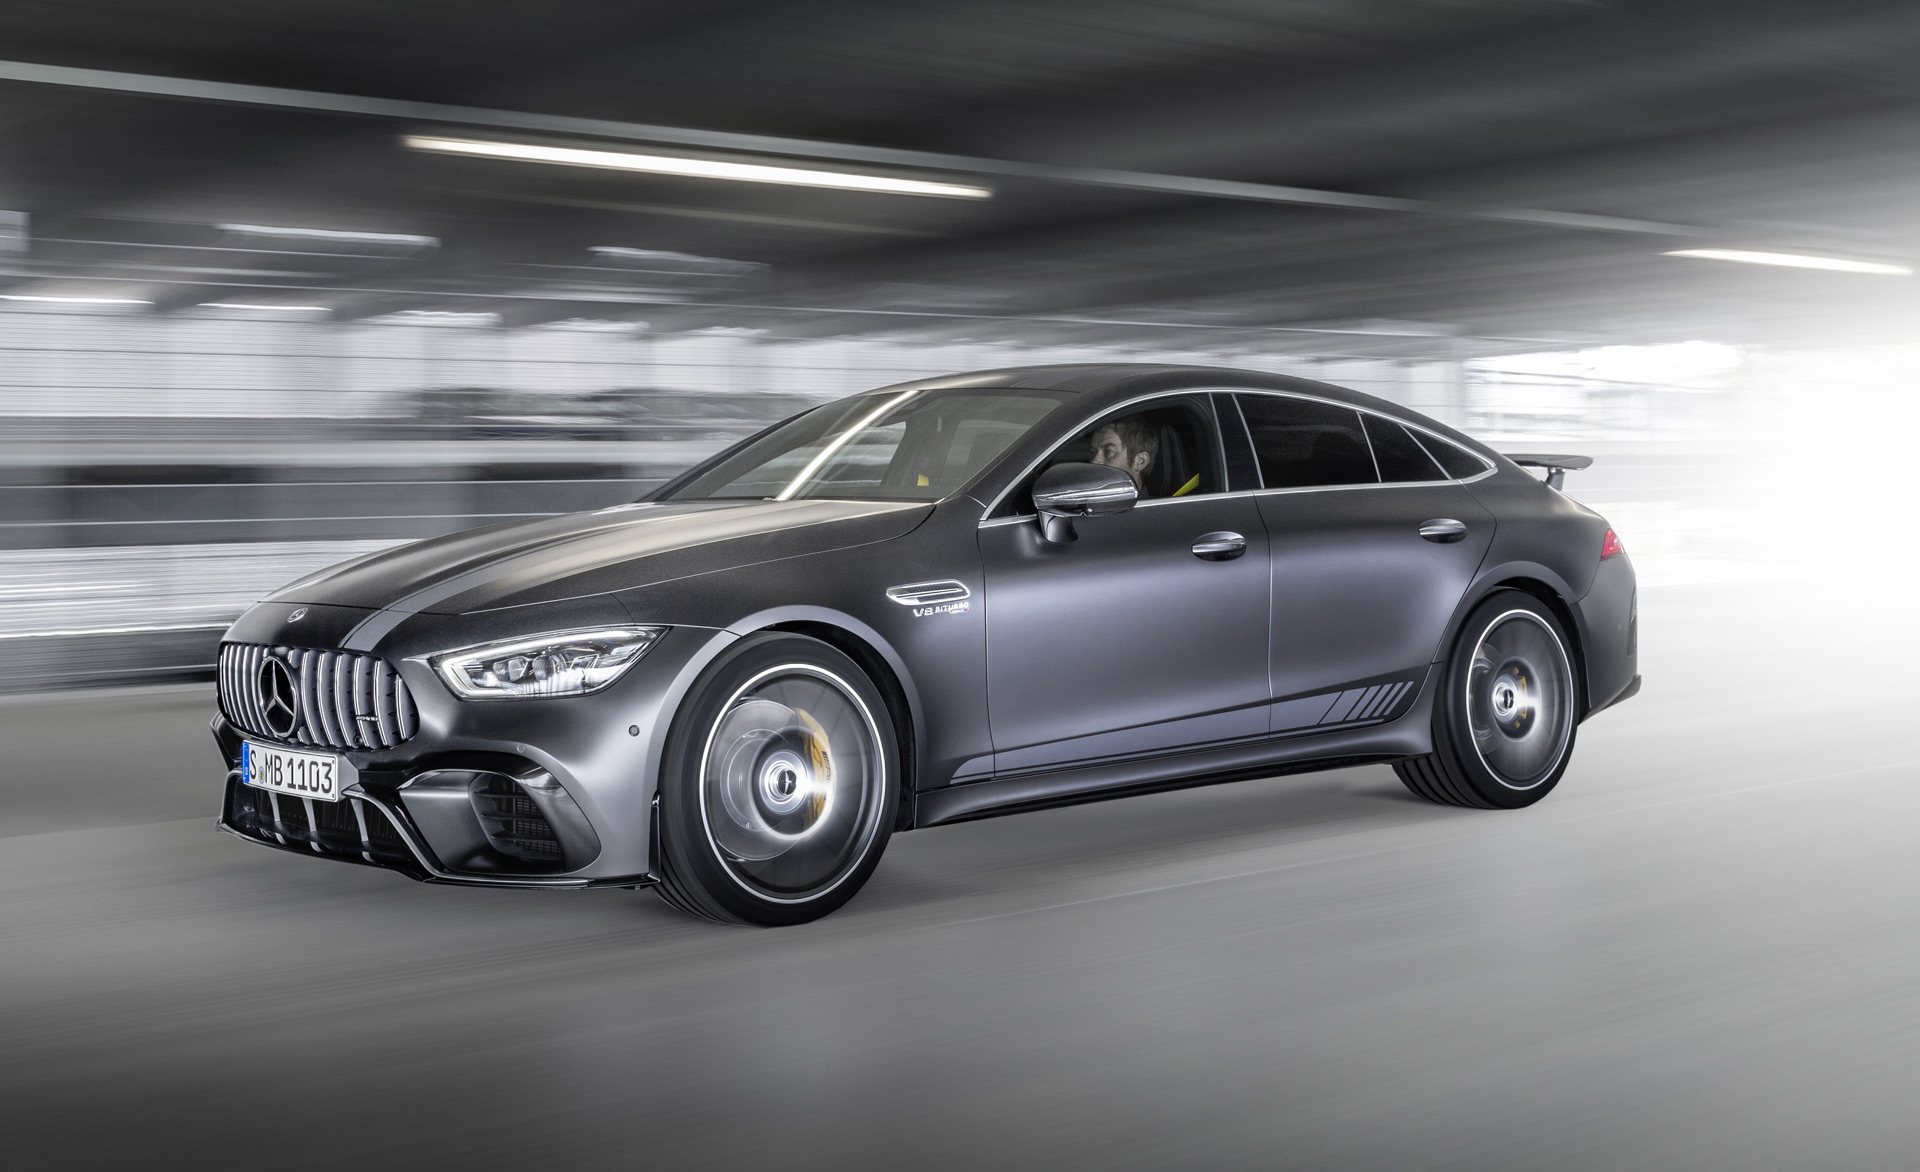 2019 Mercedes Amg Gt 4 Door Coupe Gets Edition 1 Treatment